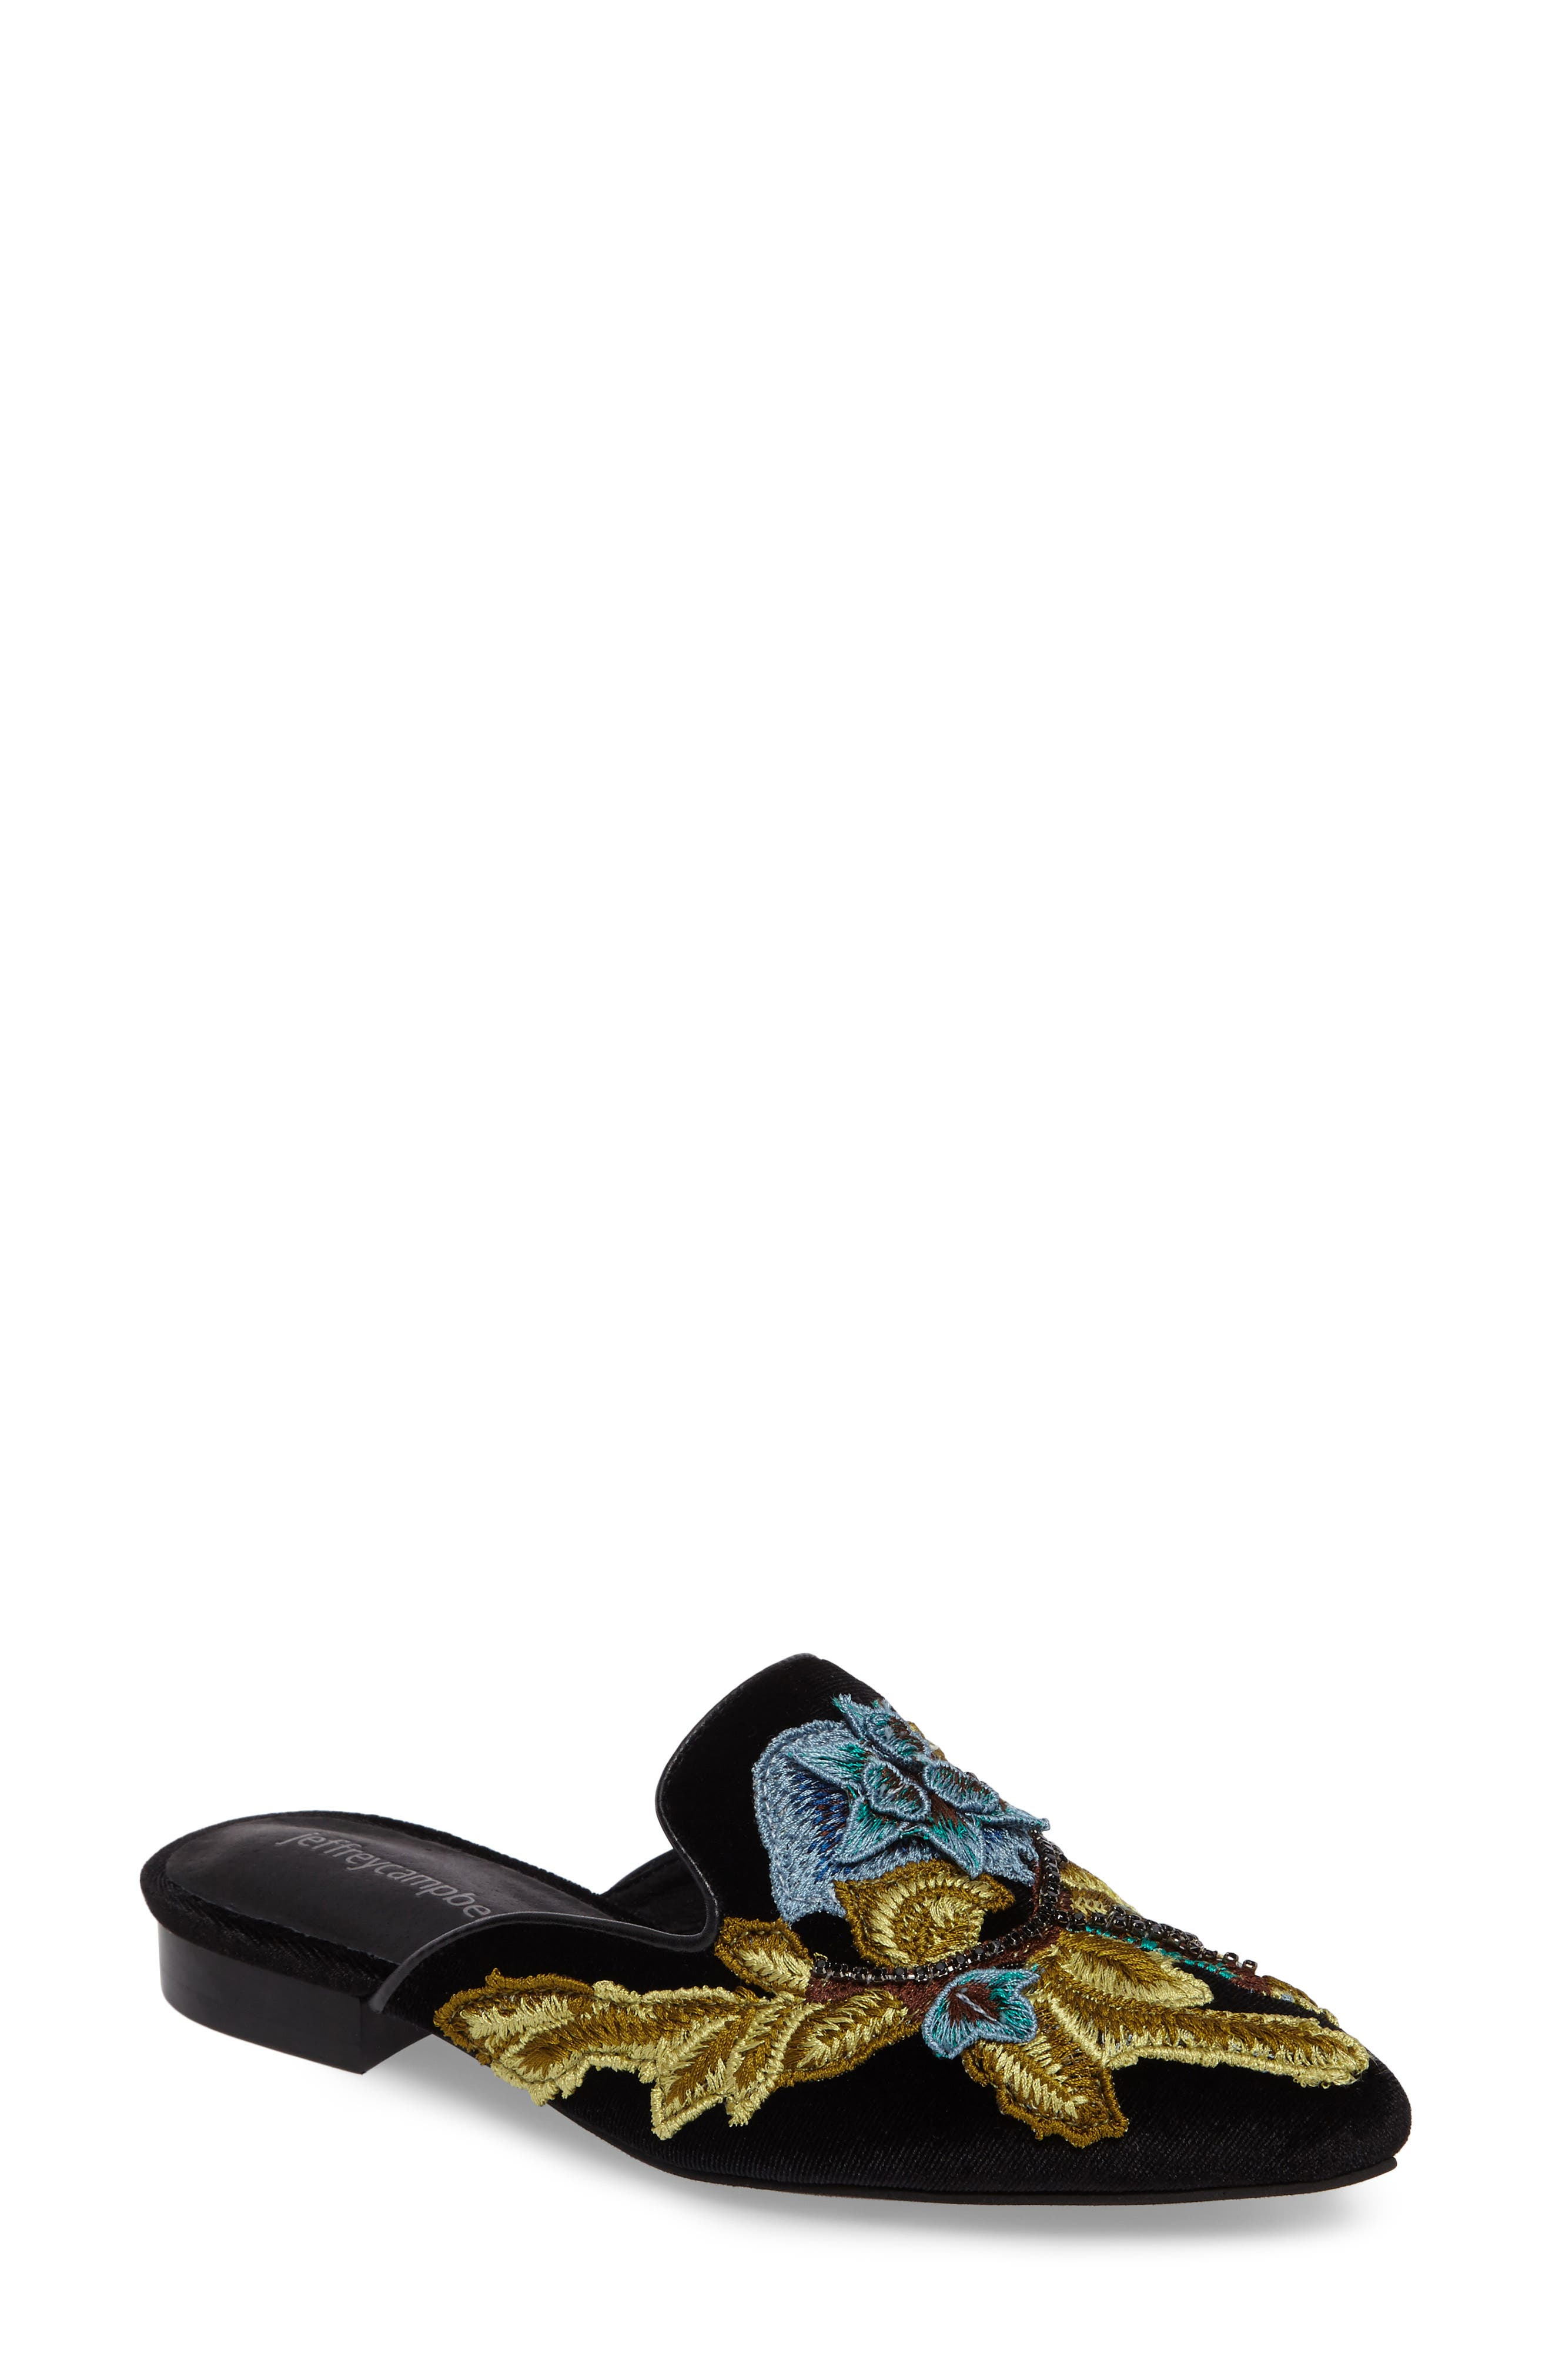 Jeffrey Campbell Claes Appliqué Loafer Mule (Women)